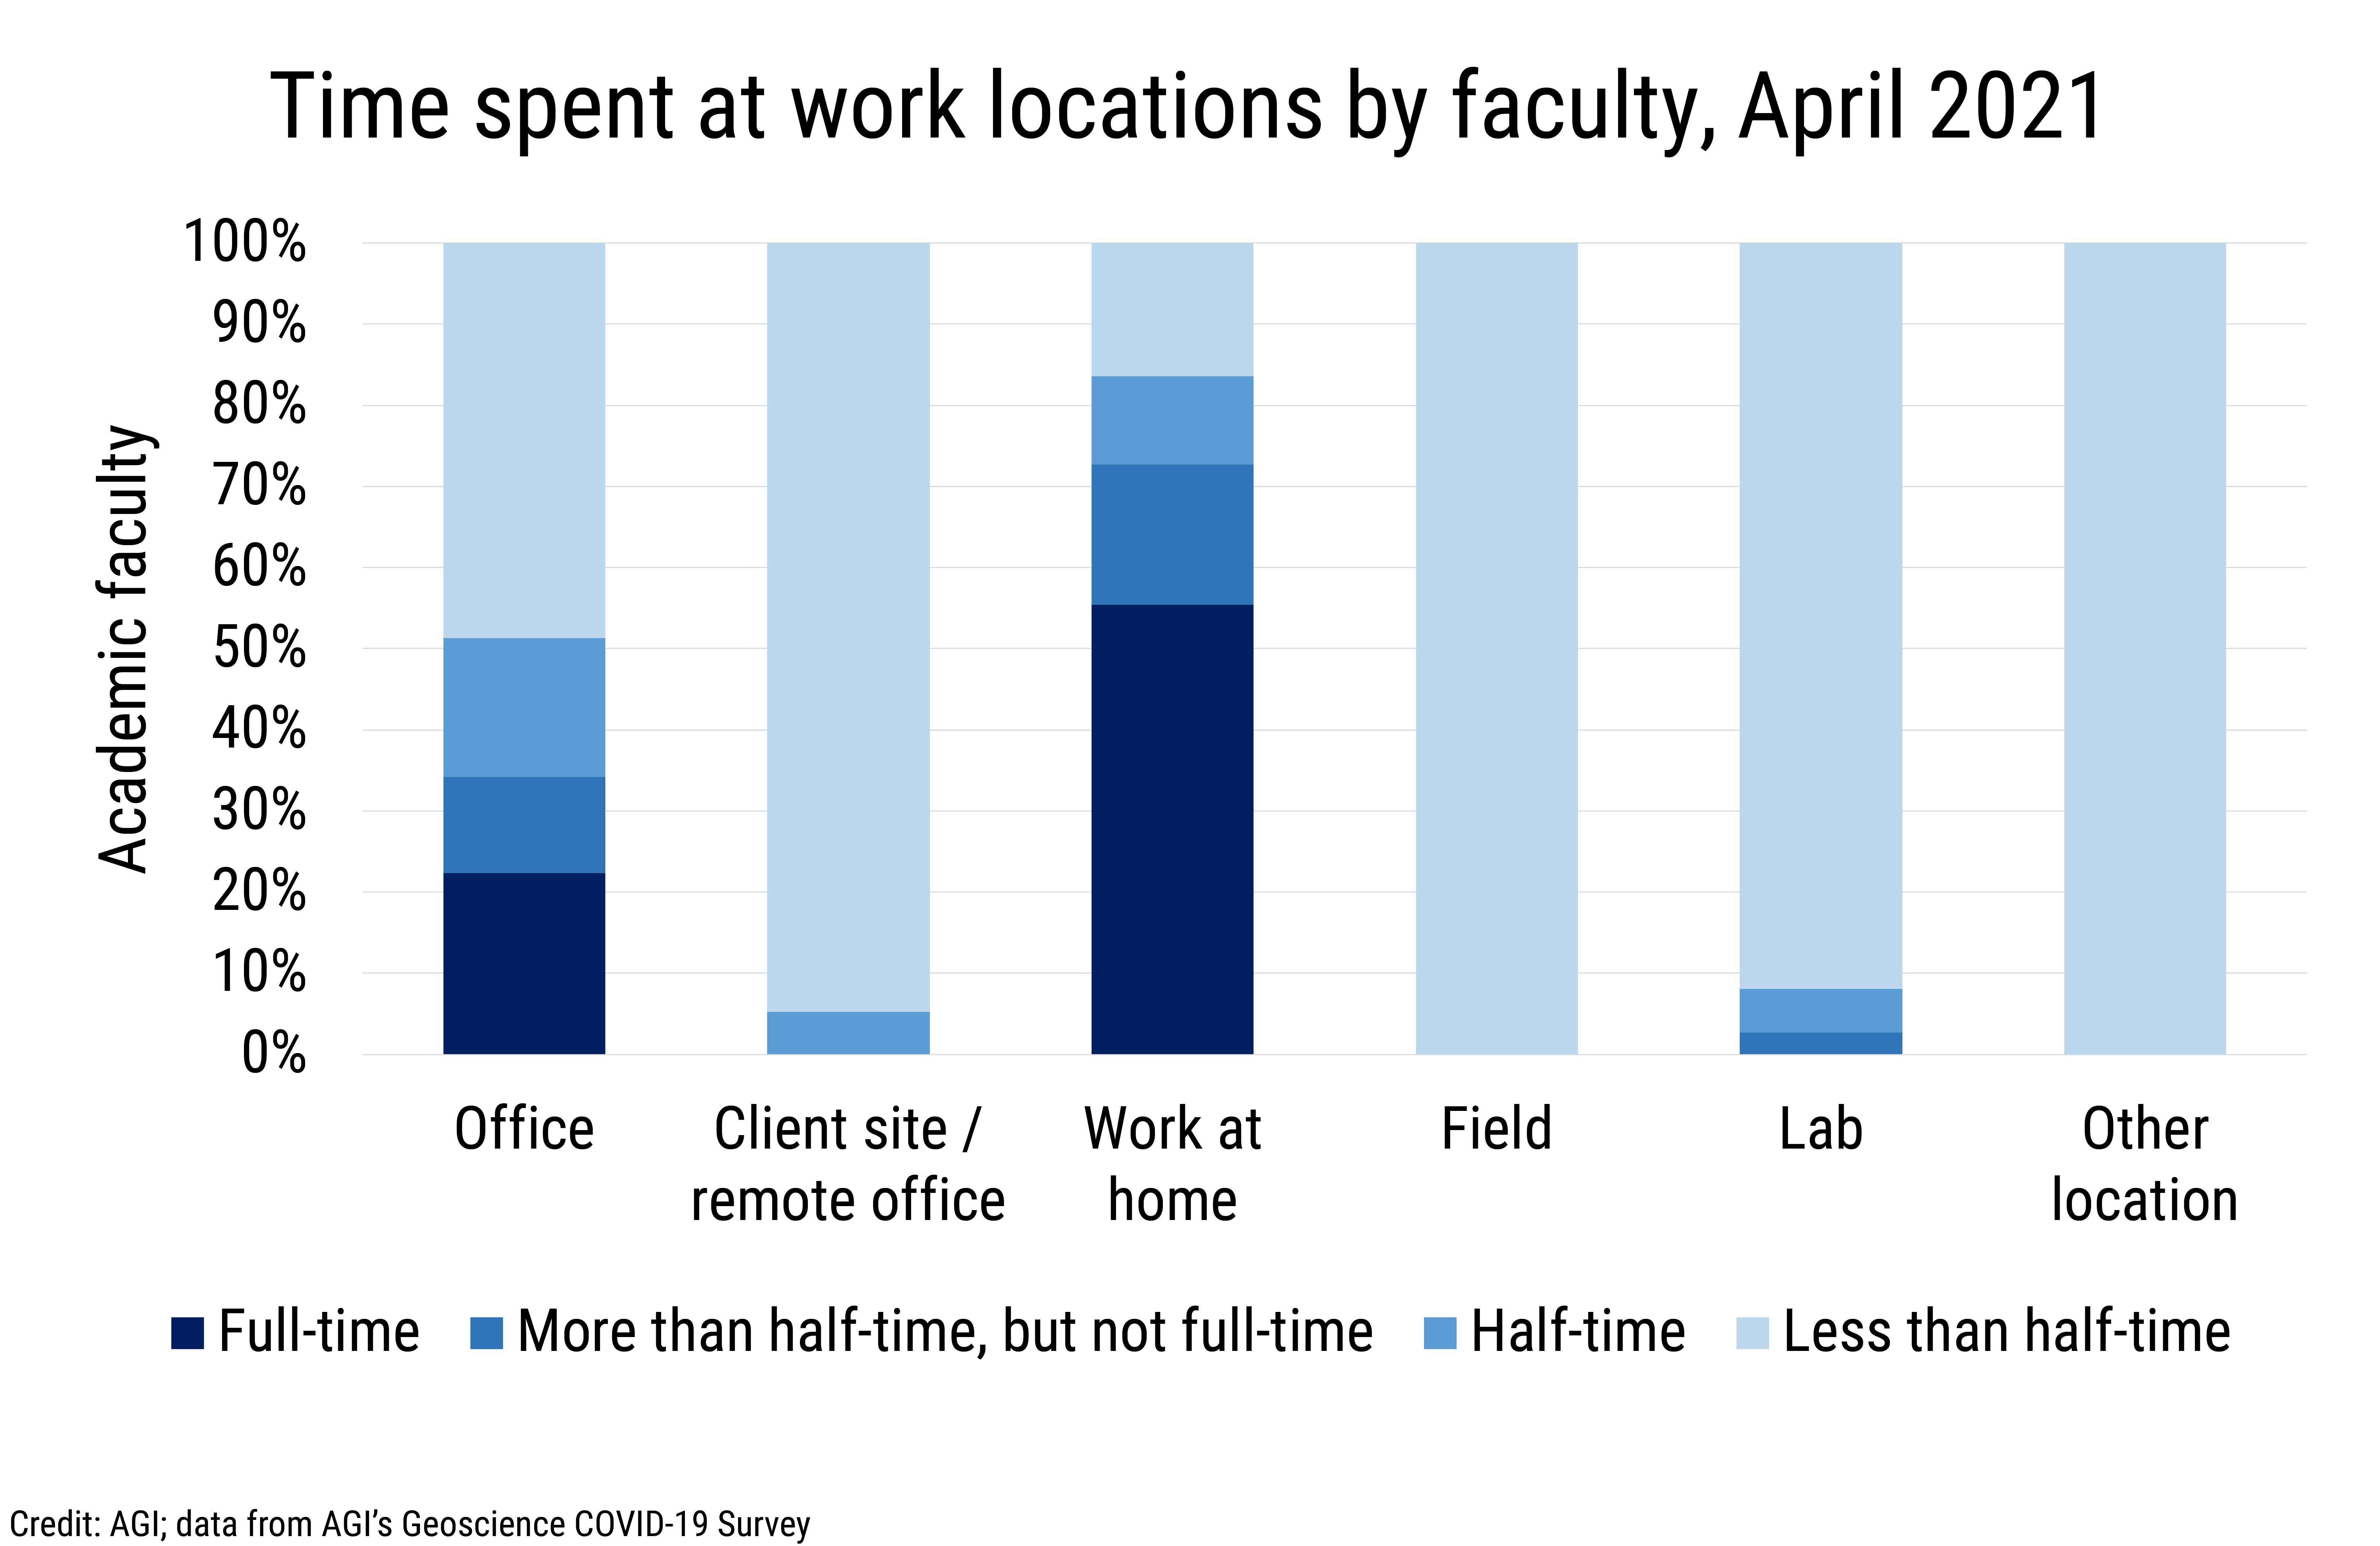 DB_2021-014 chart 06: Time spent at work locations by faculty, April 2021 (Credit: AGI; data from AGI's Geoscience COVID-19 Survey)